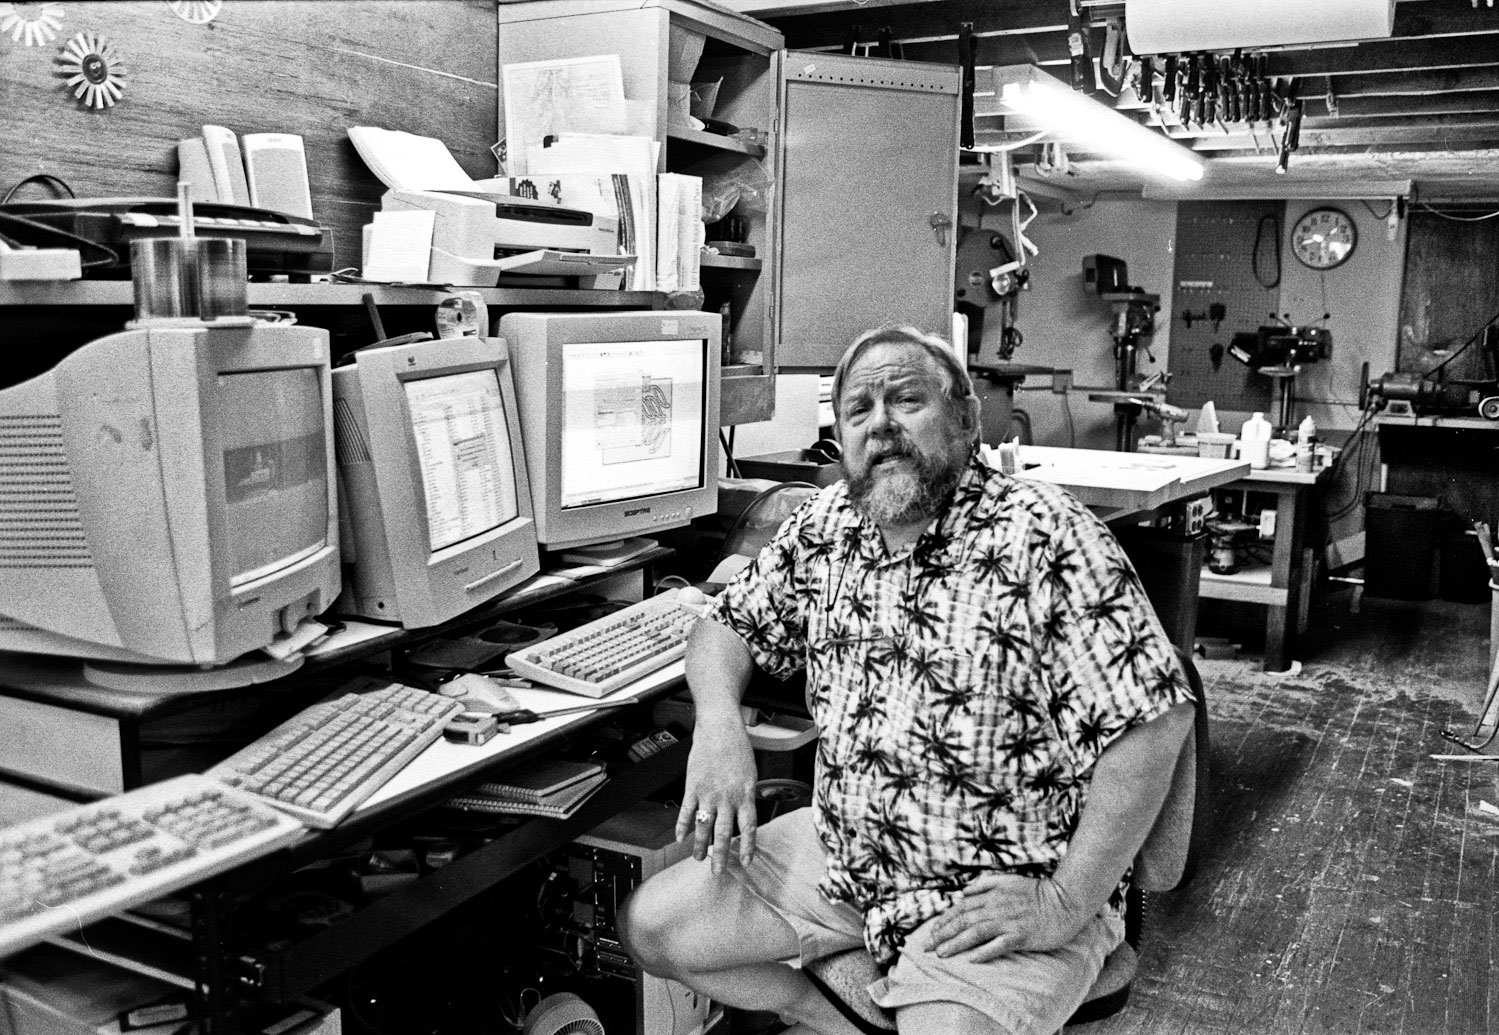 Bridge City Systems - a computer store/wood shop man sitting at desk